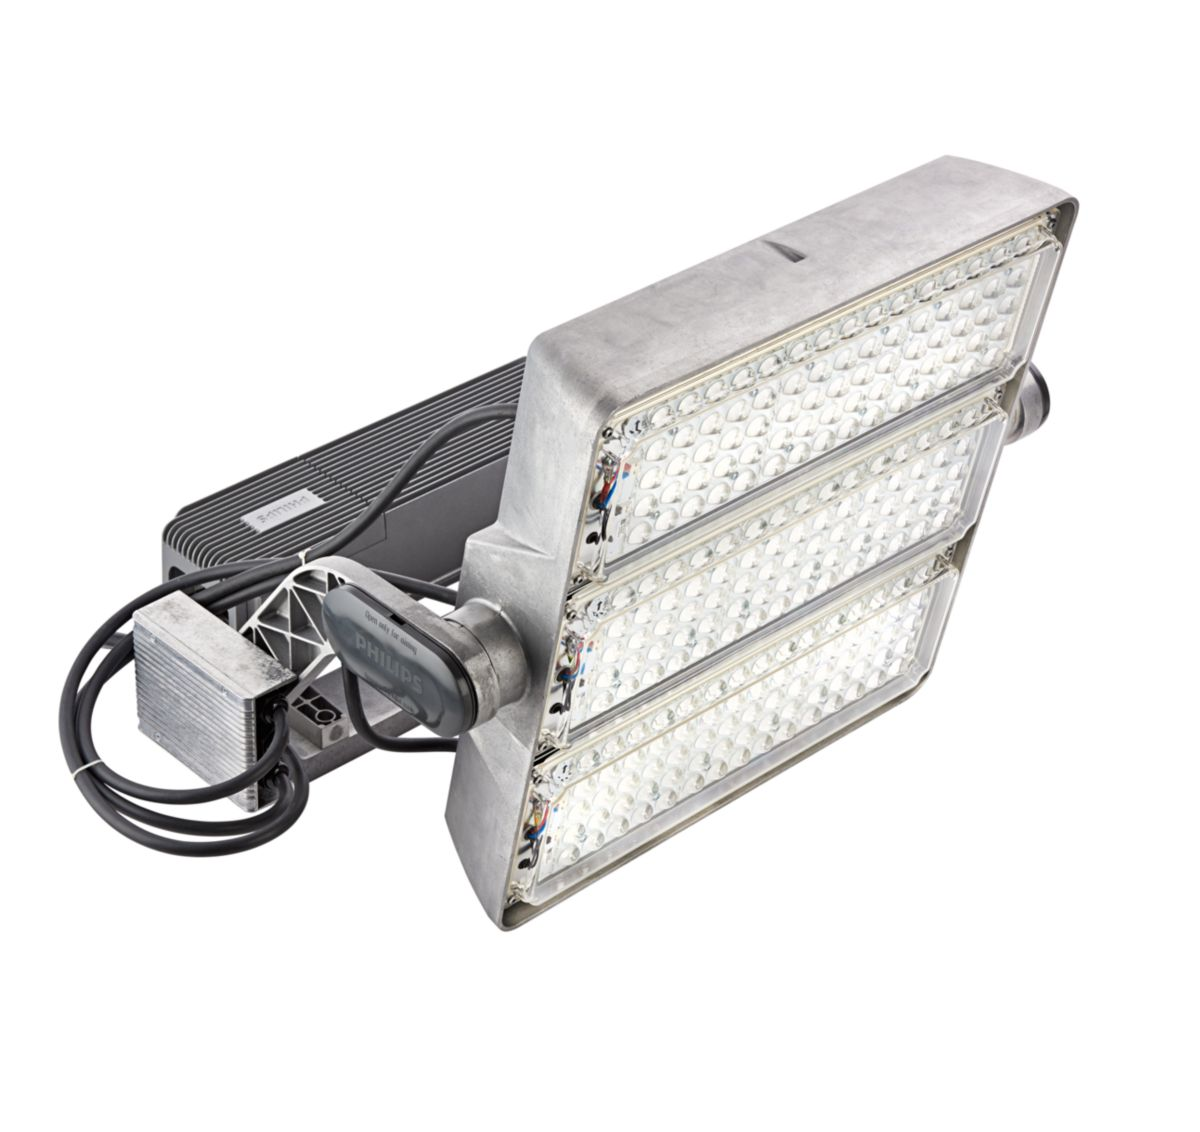 Recreational sports lighting products. OptiVision LED gen2  sc 1 st  Philips Lighting & LED flood lights for outdoor sports | Philips Lighting azcodes.com